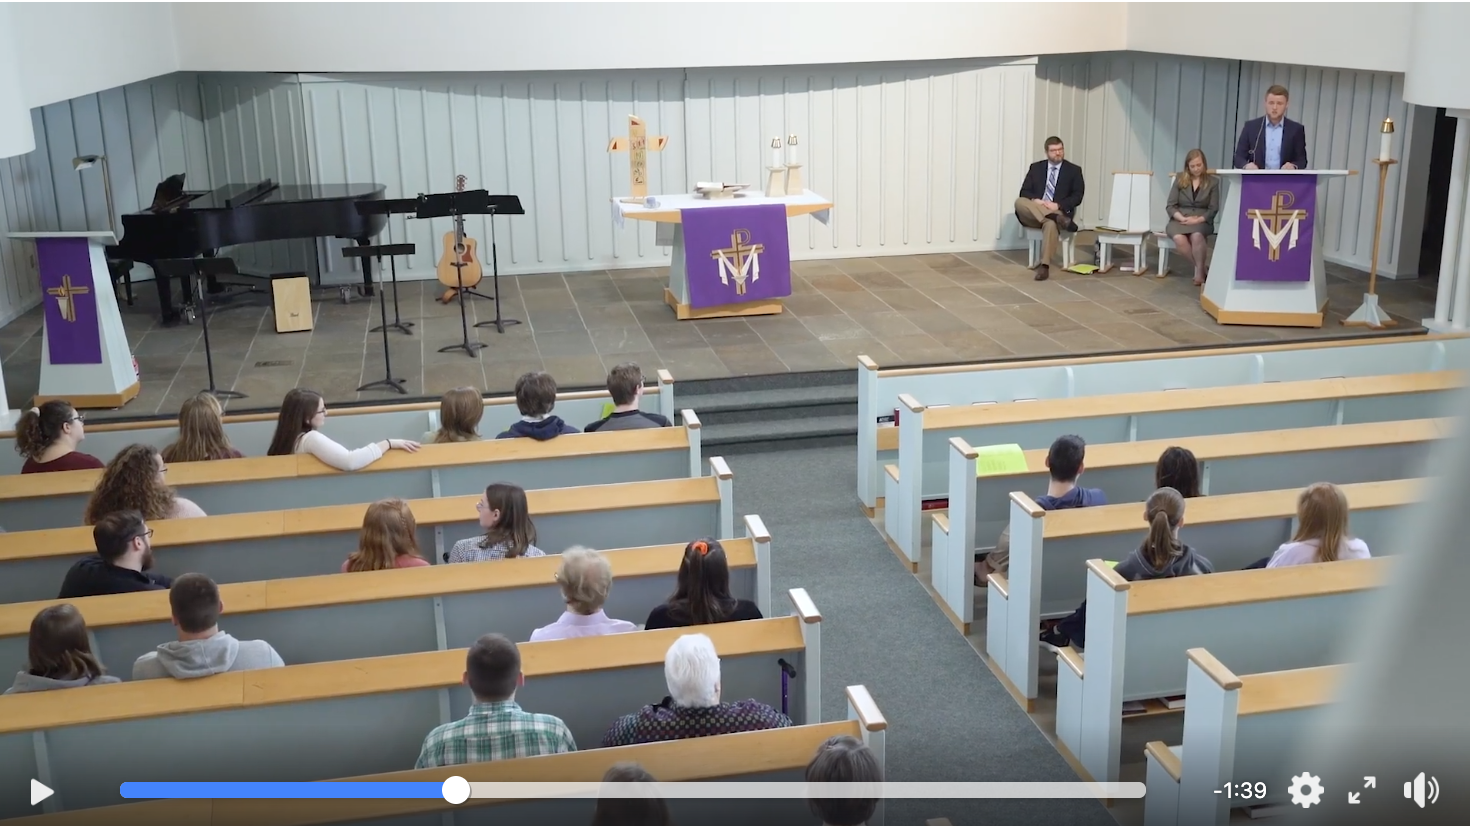 Chapel video still